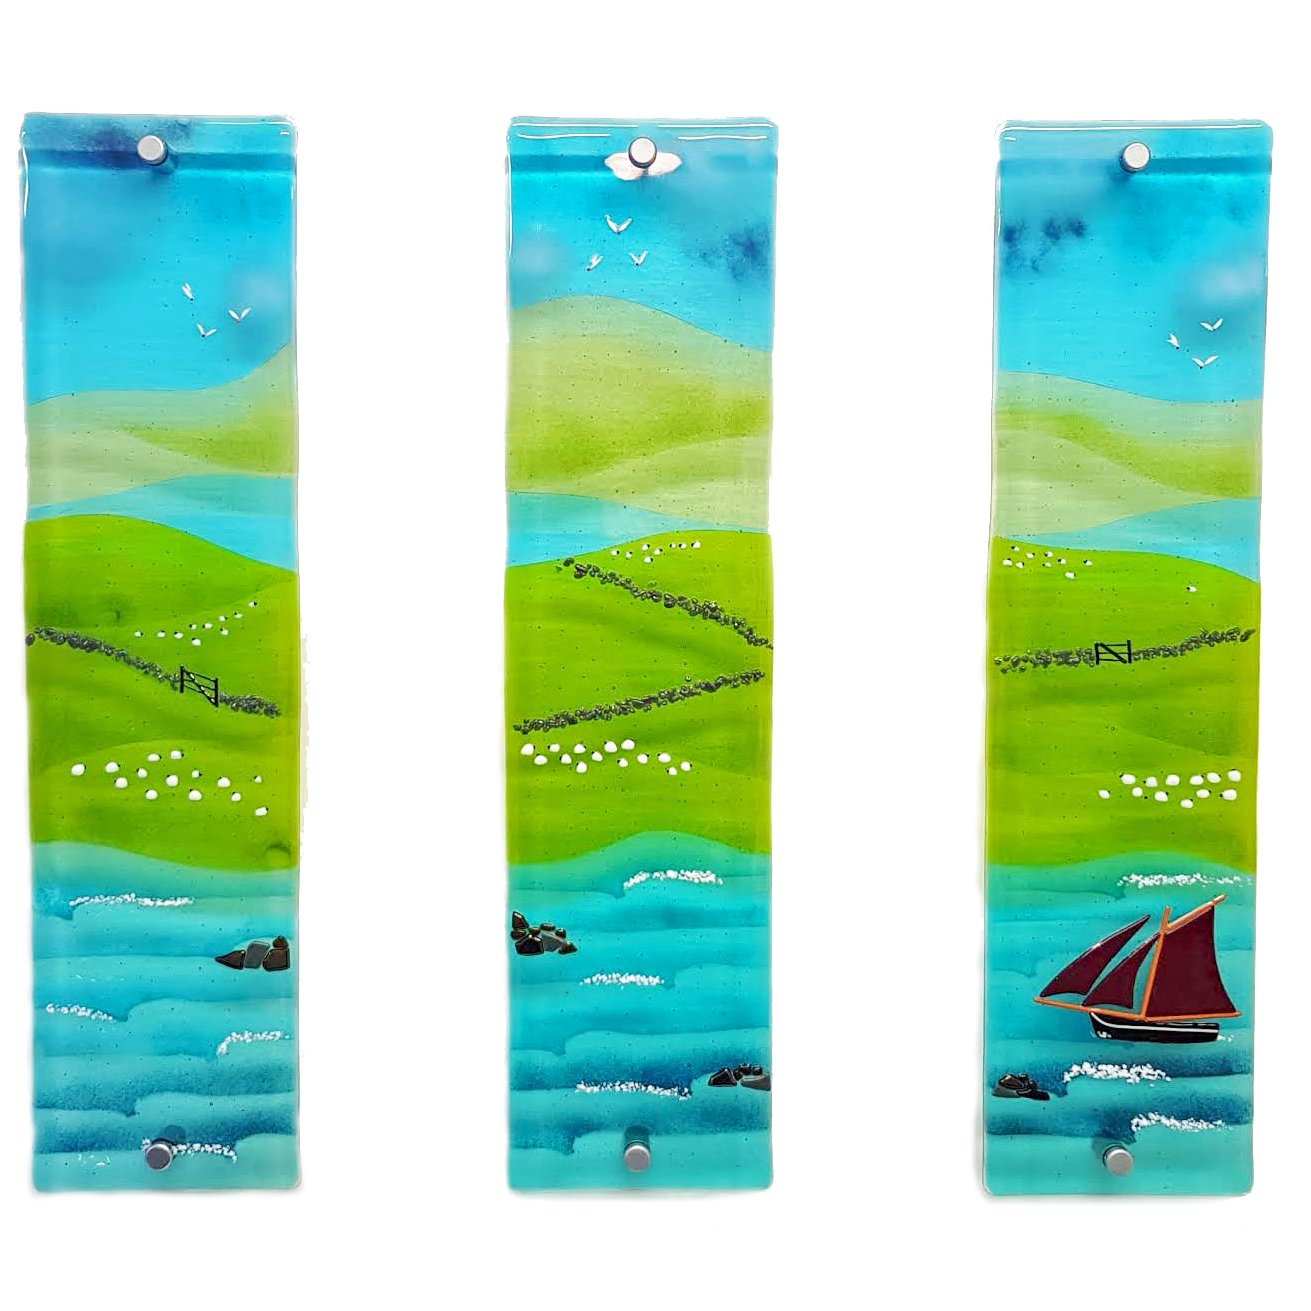 Glass wall art triptych featuring a Connemara Bay, Galway Hooker, sheep, fields and blue skies